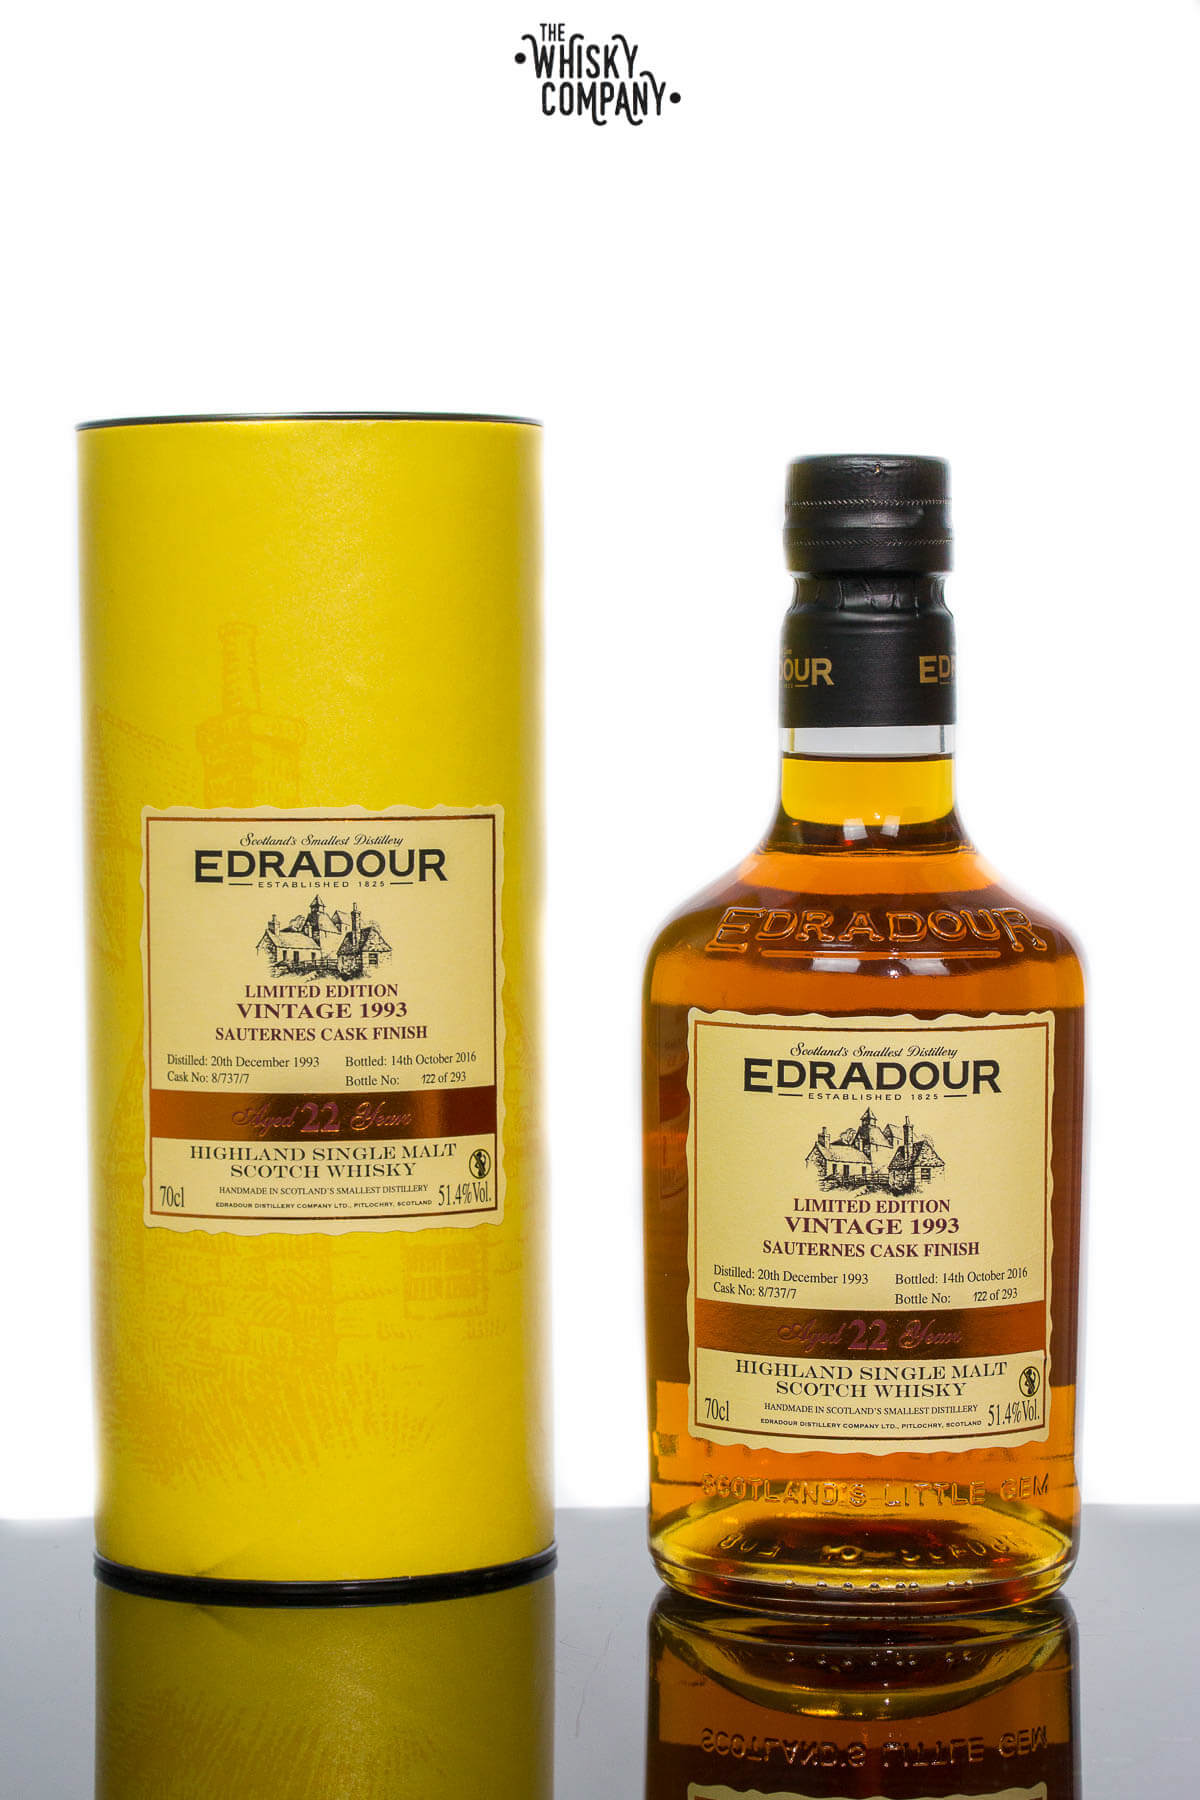 Edradour 1993 Vintage Aged 22 Years Sauternes Cask Finish Highland Single Malt Scotch Whisky (700ml)